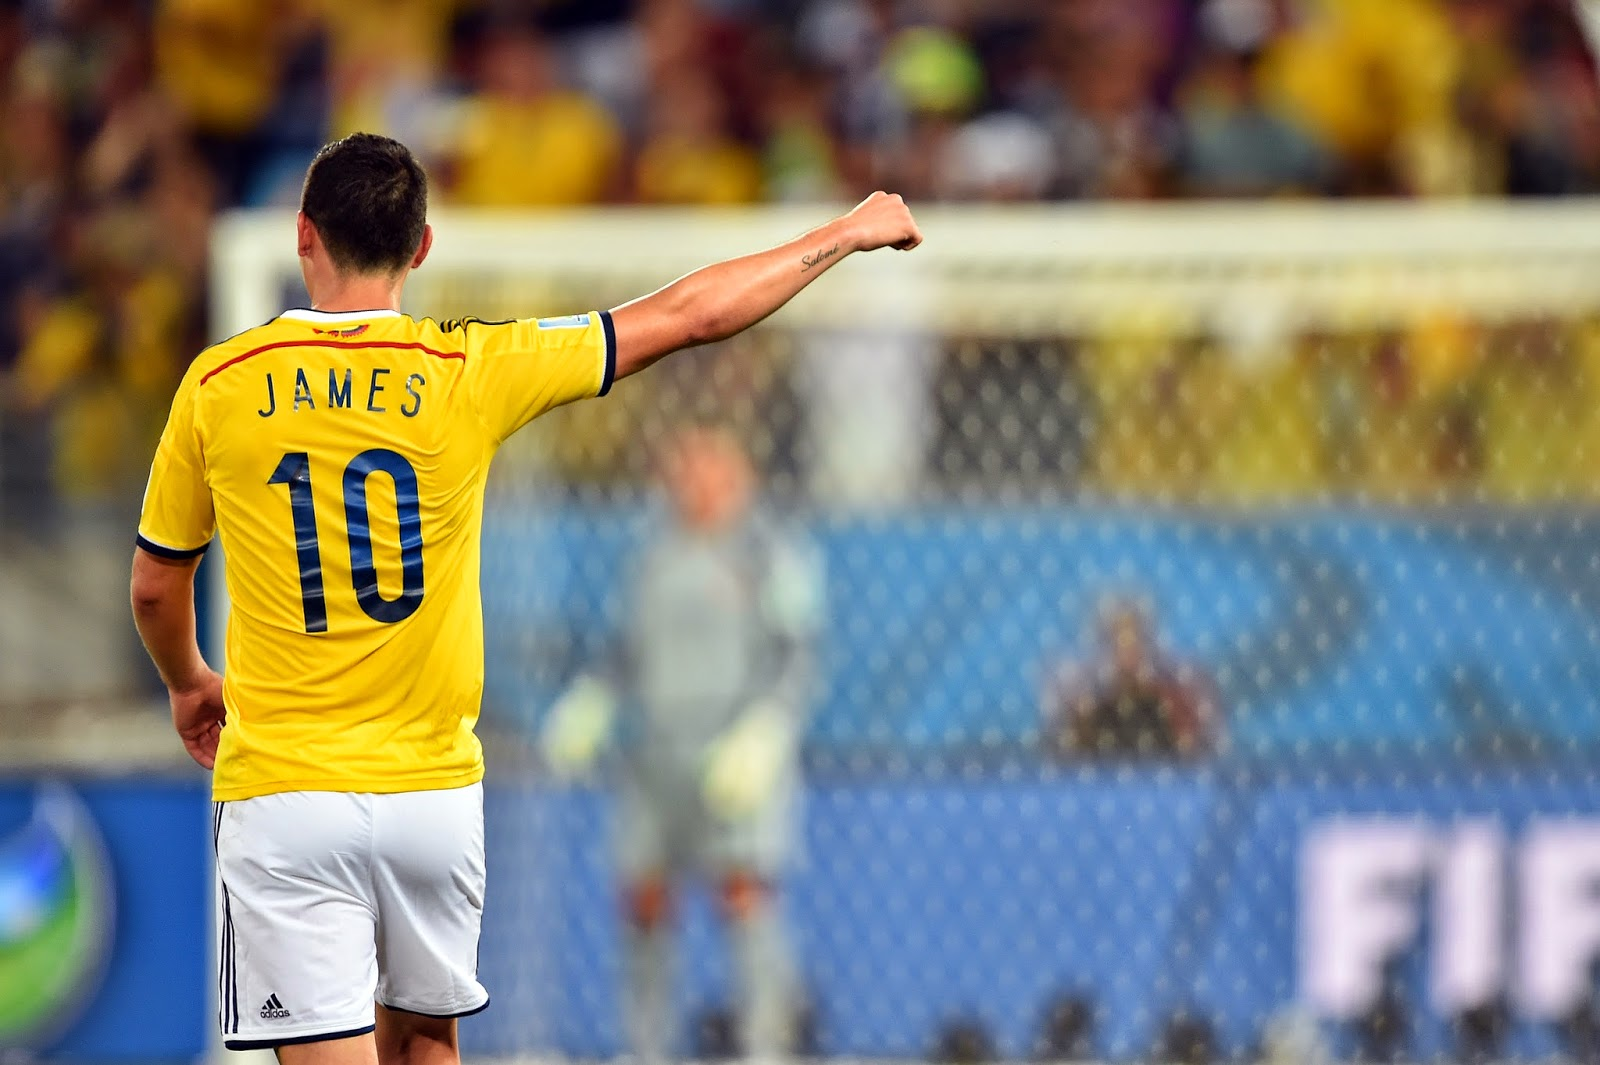 James rodriguez of colombia at 2014 world cup wallpaper - James rodriguez wallpaper hd ...